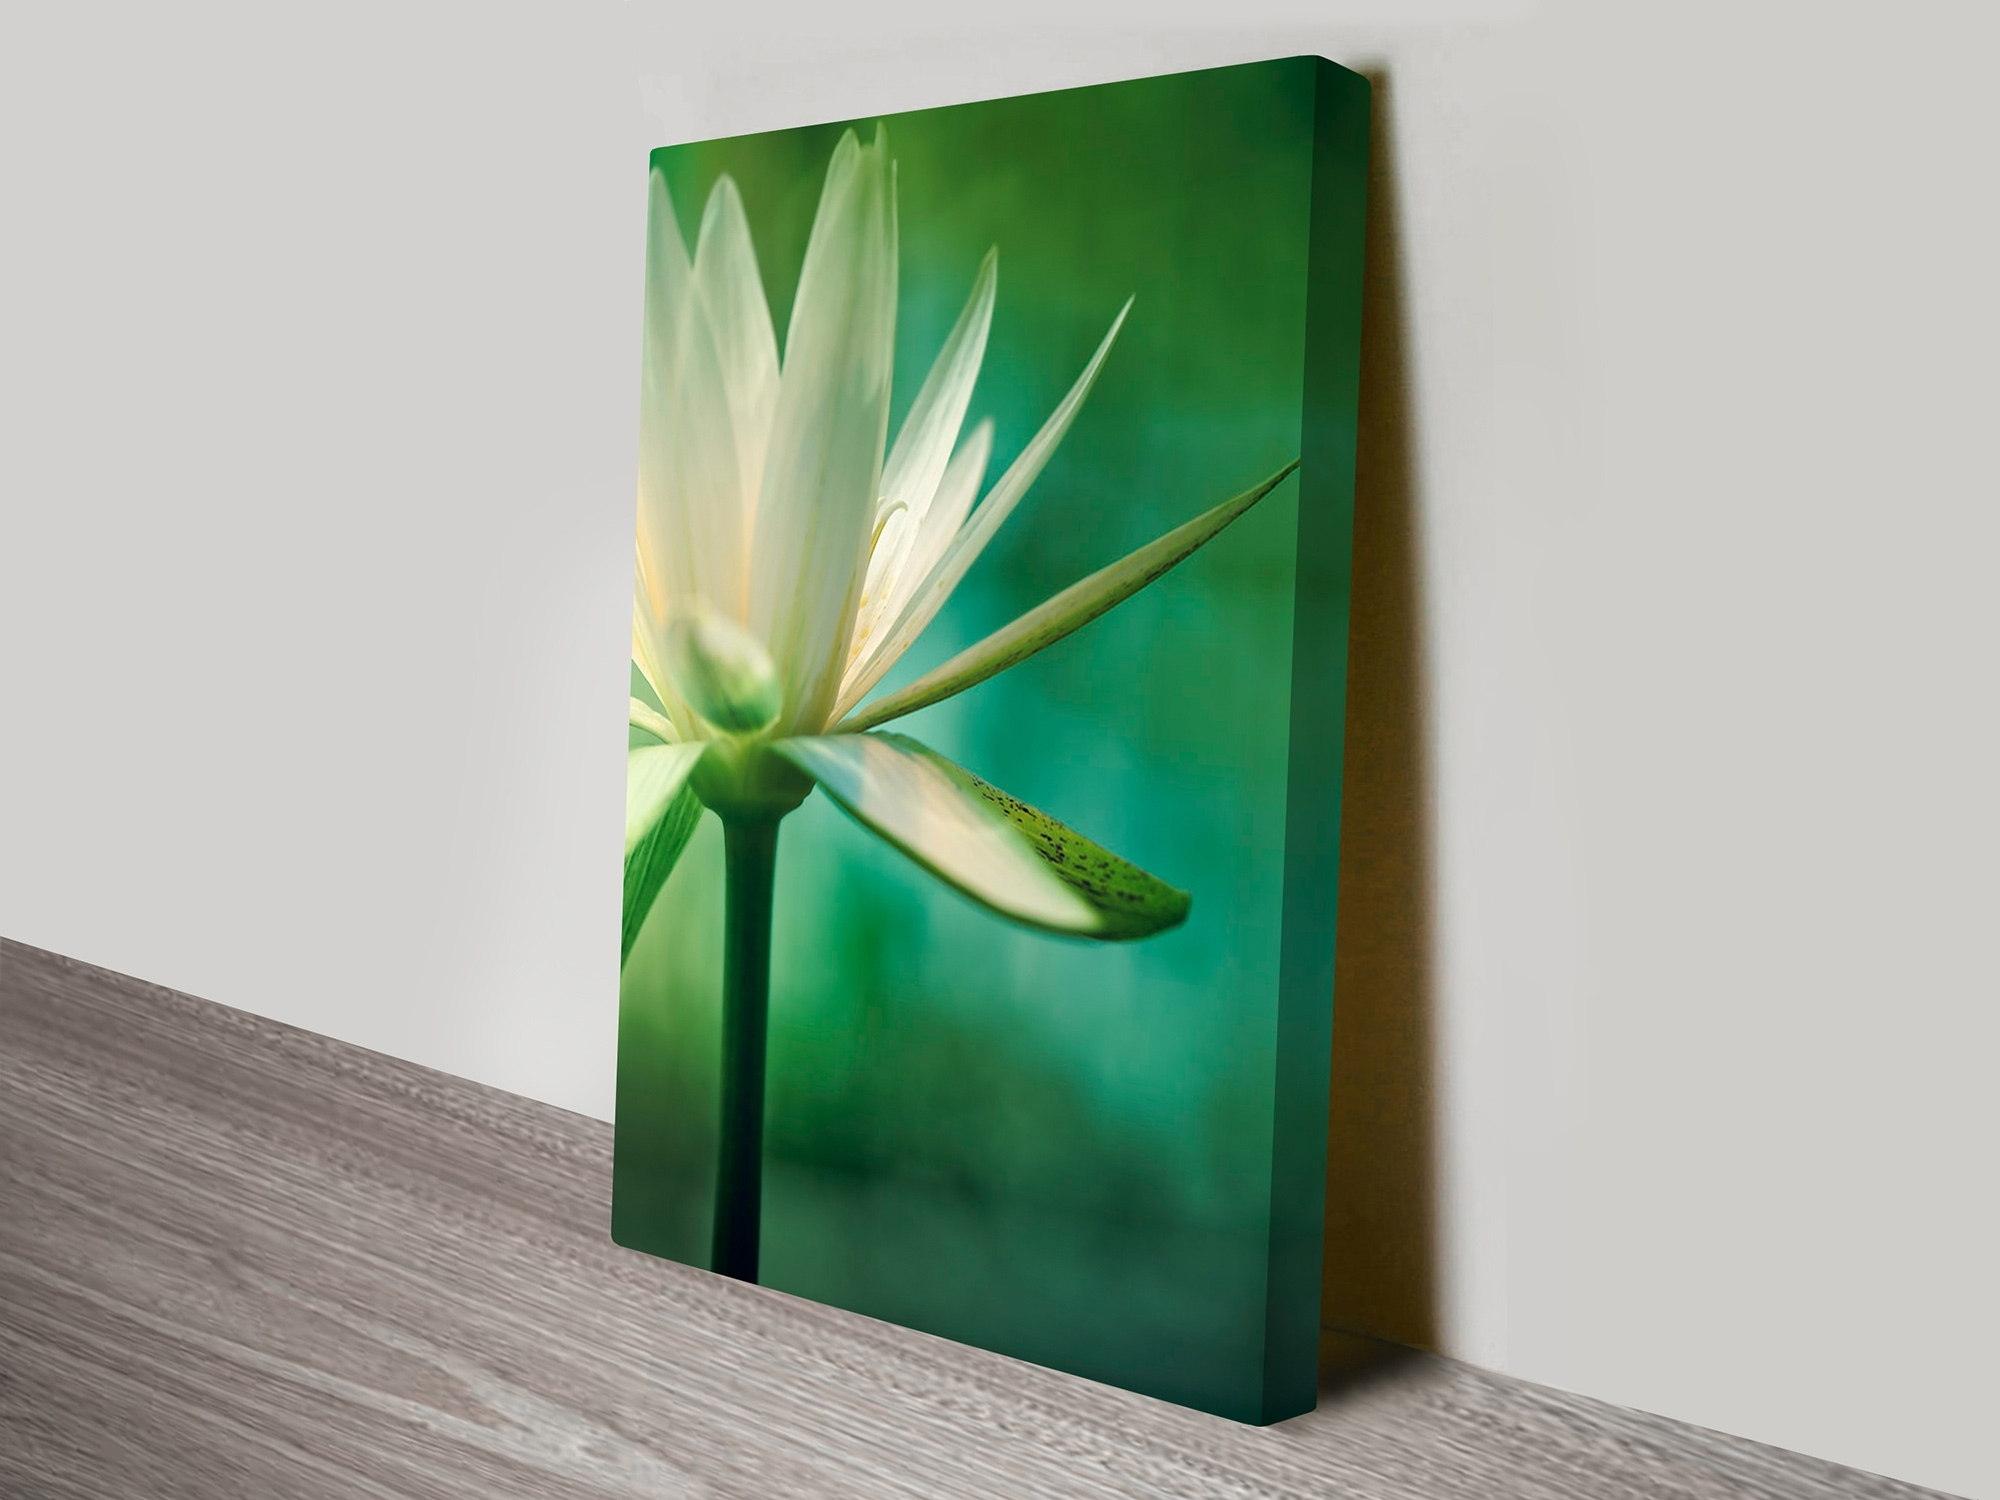 Flower Artwork On Canvas Prints Australia Intended For 2017 Canvas Wall Art In Australia (Gallery 3 of 15)